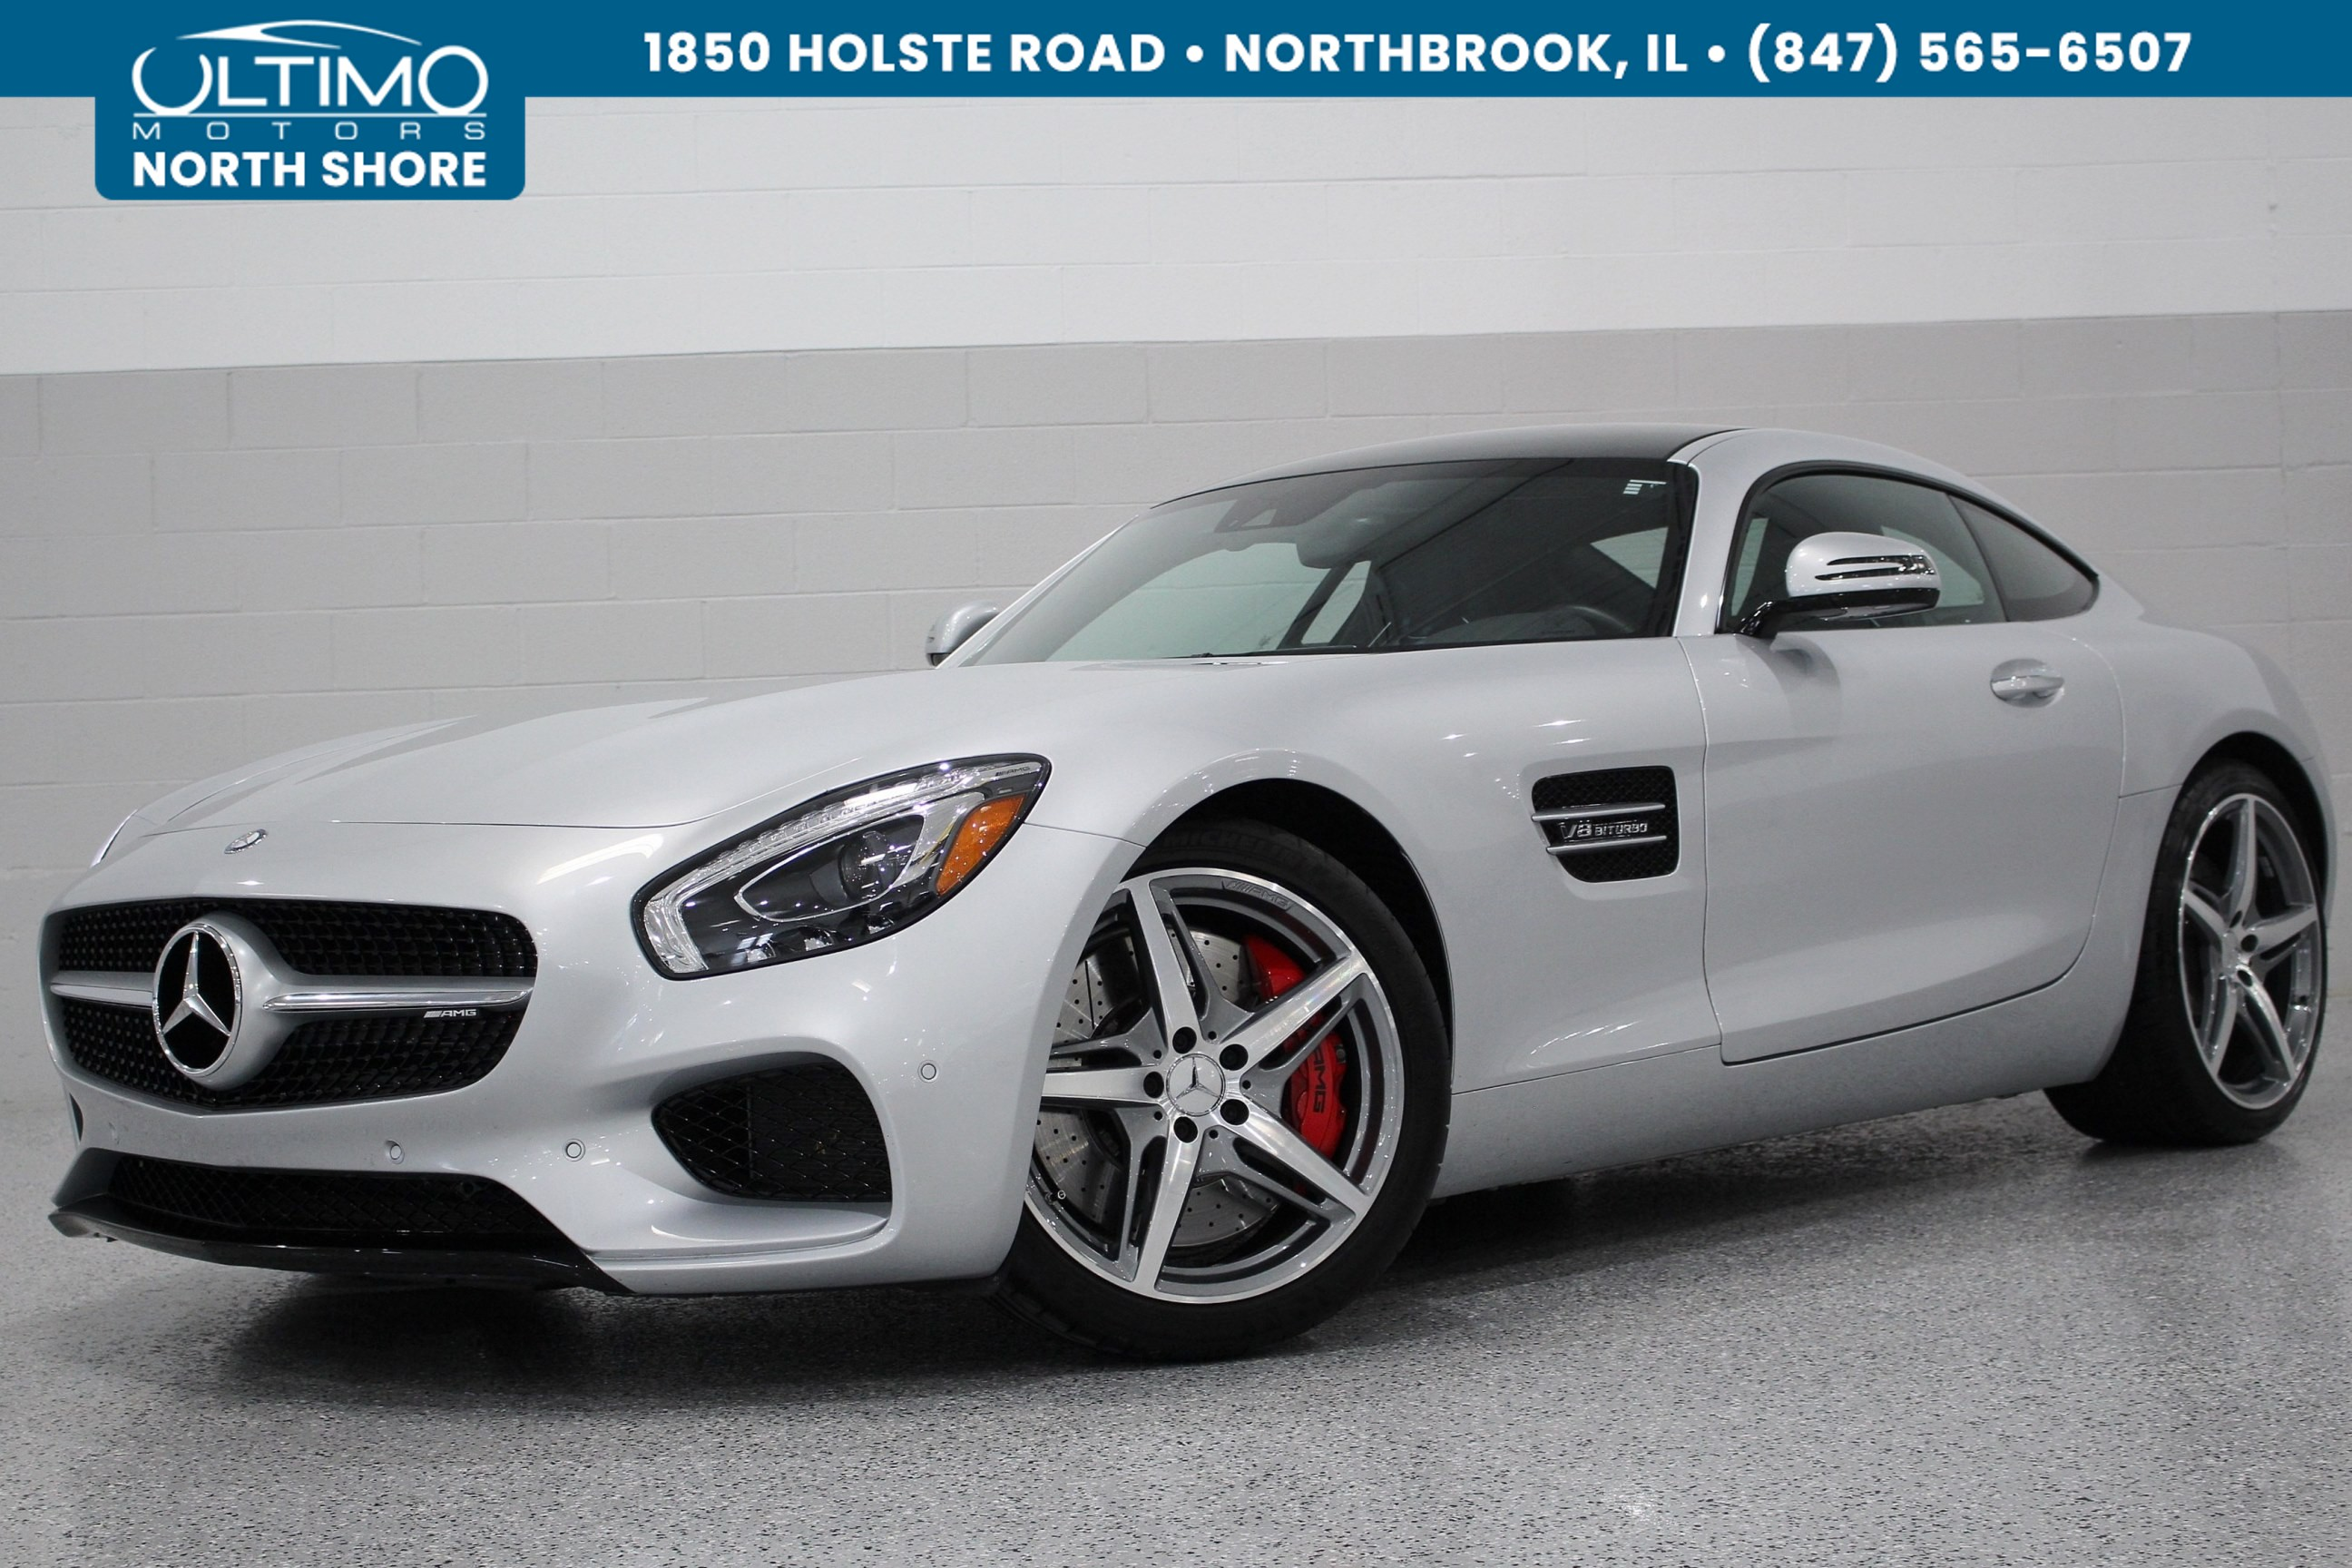 Pre Owned 2016 Mercedes Benz AMG GT S Panorama Roof Lane Assist w